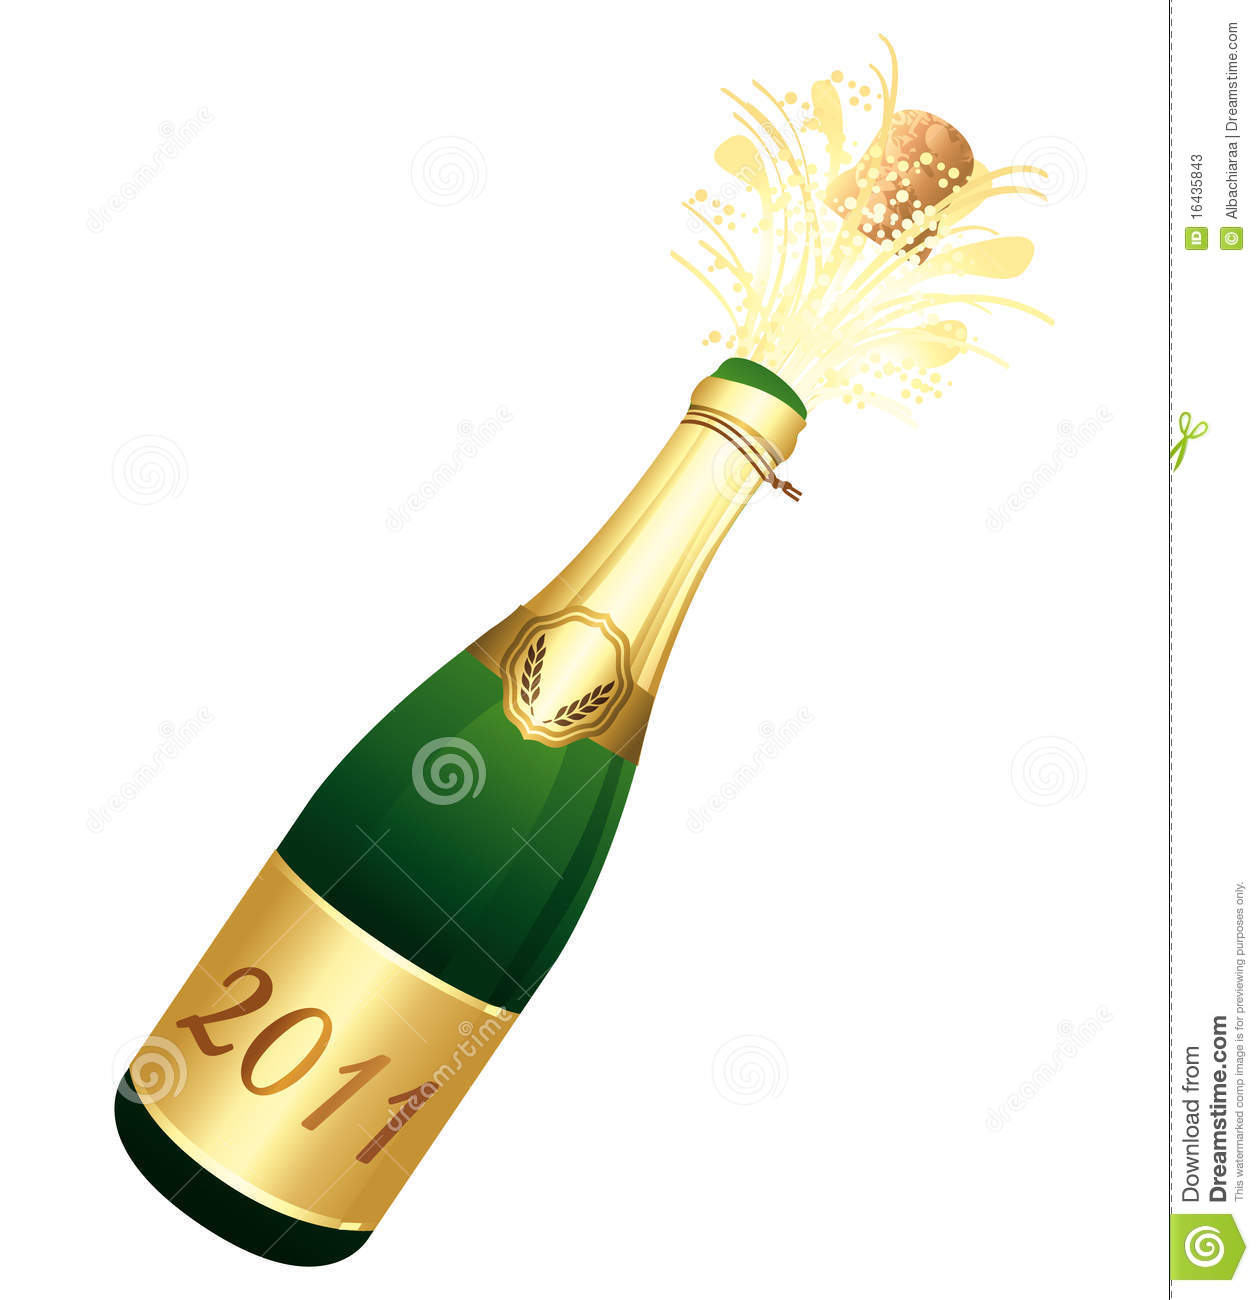 Champagne clipart poppin Champagnefles Champagne 2011 Clipart cps